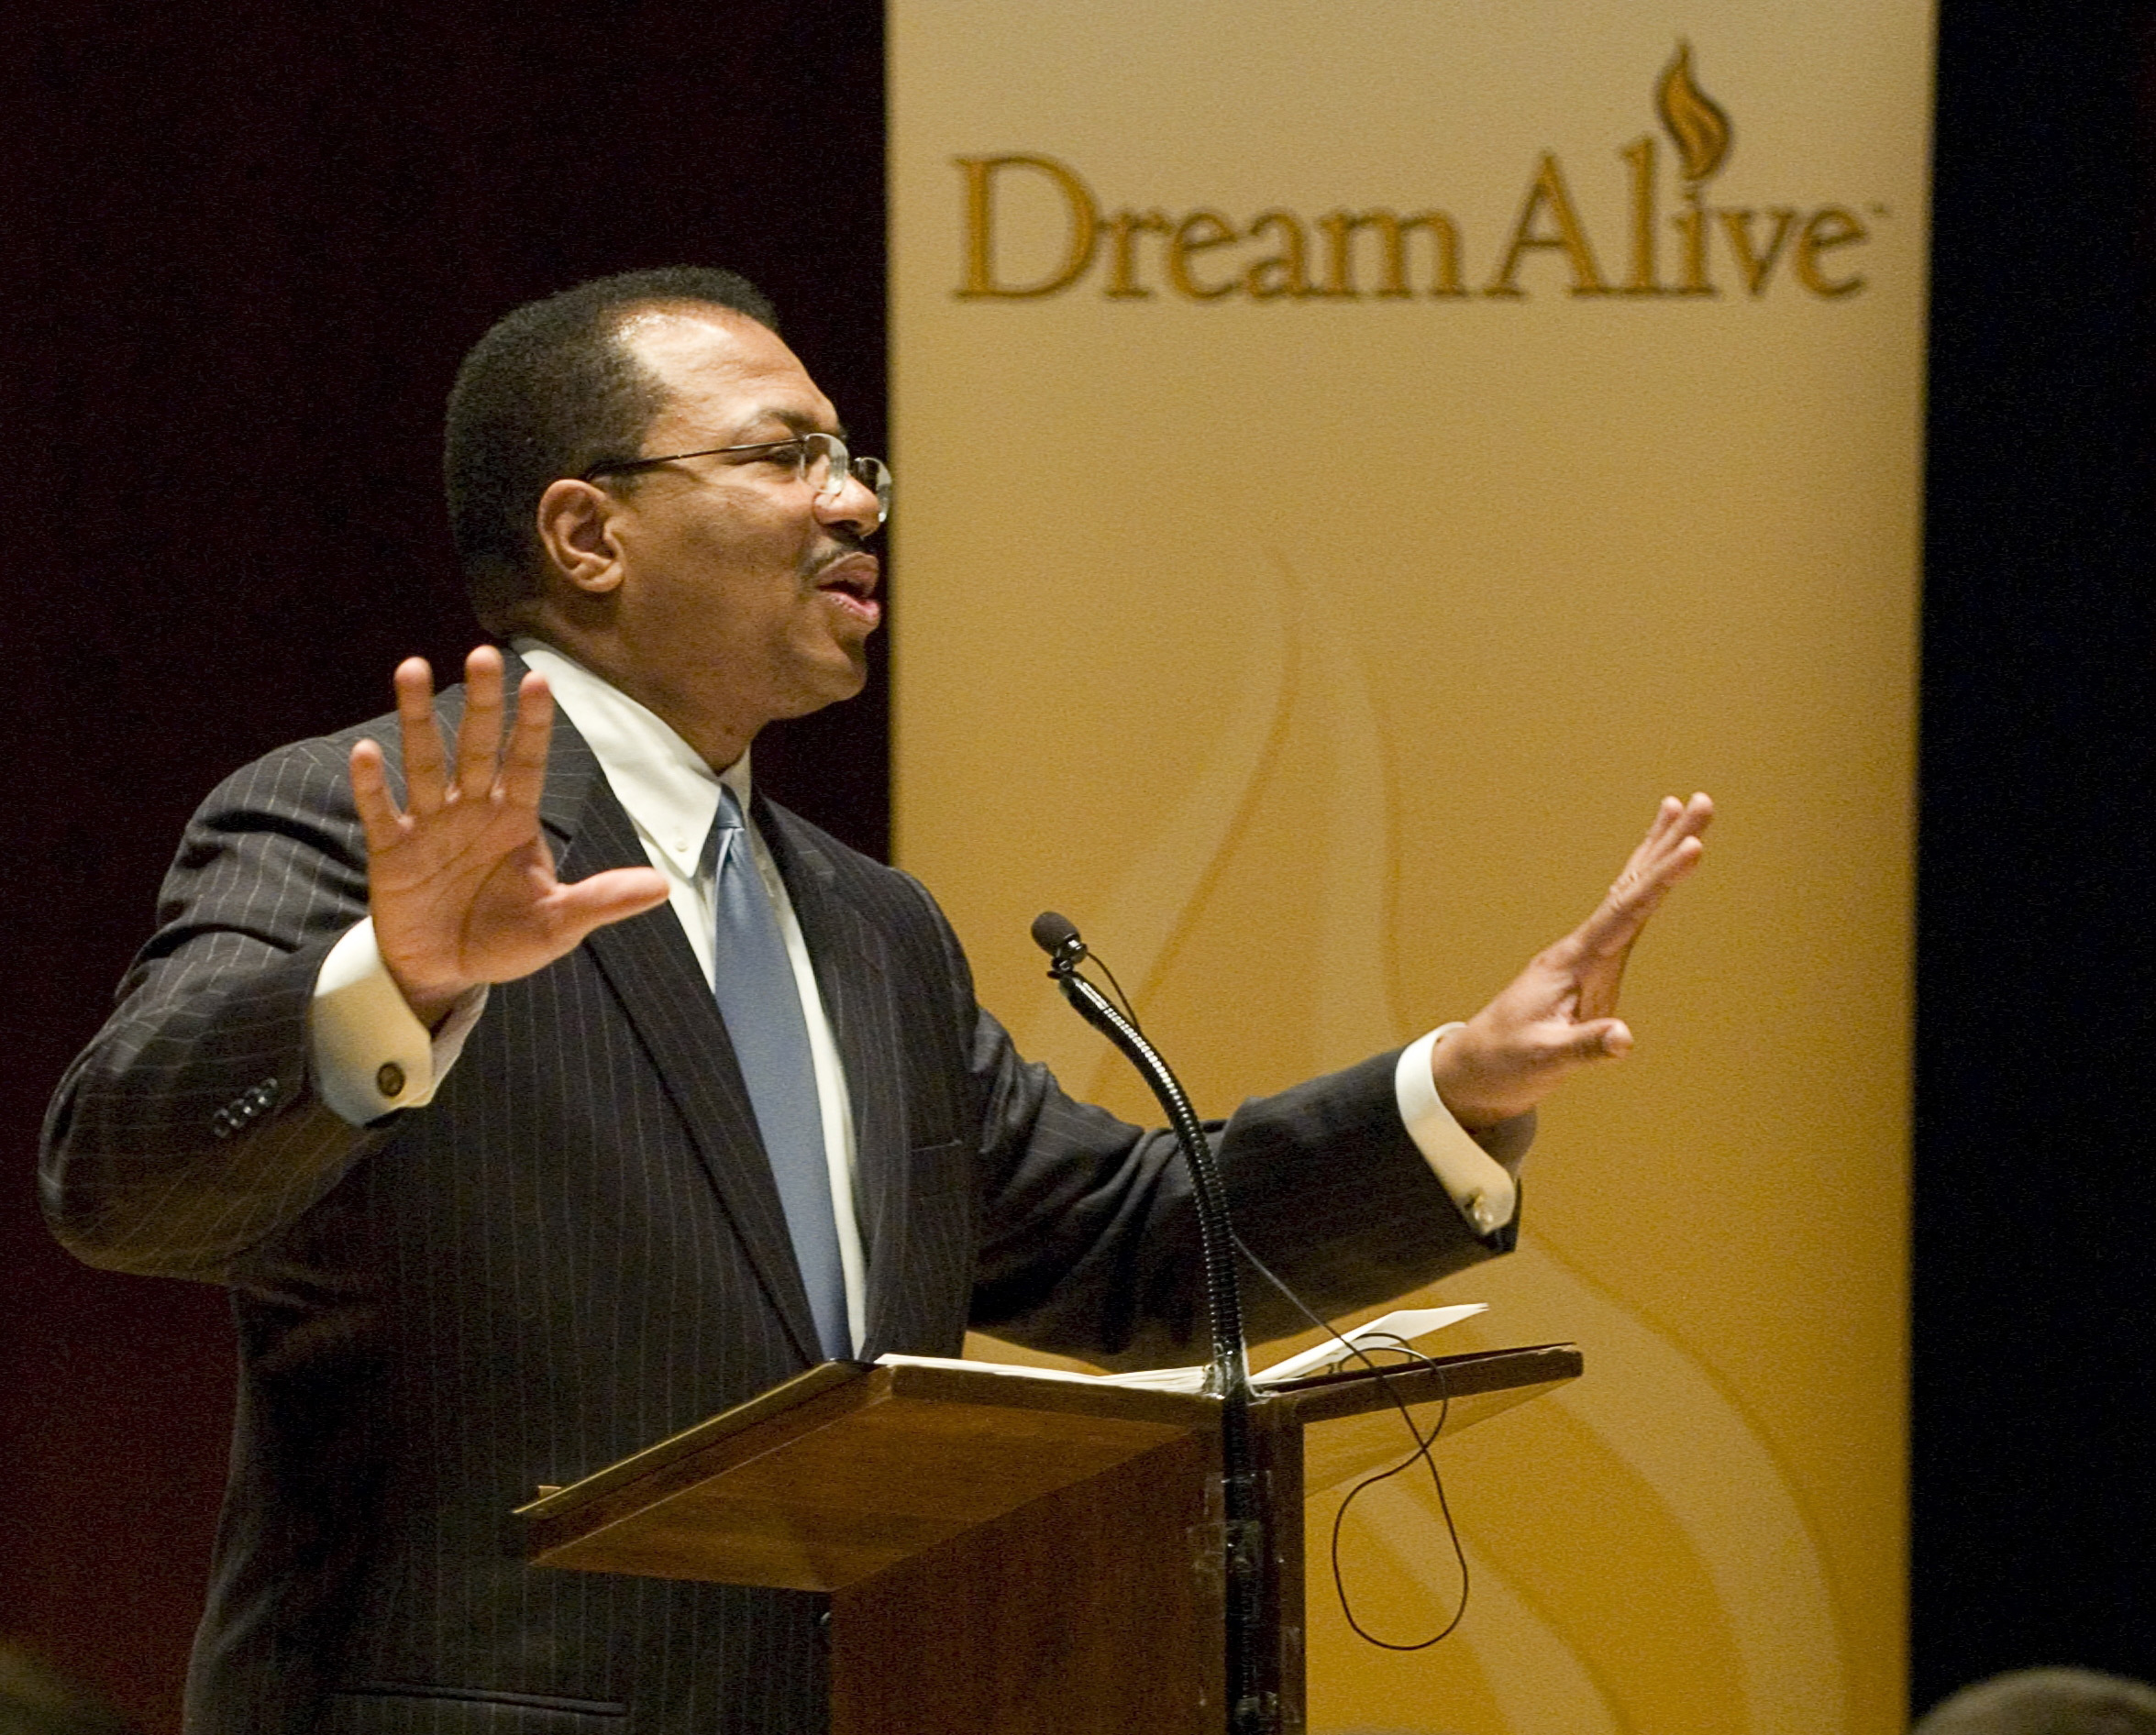 """Joe Rogers, Former Lt. Governor of Colorado and developer of """"The Dream Alive Program,"""" will deliver a keynote address on Jan. 19 at noon, Kingsbury Hall. Dream Alive is an incredible live commentary by Joe Rogers, former Lt. Governor of Colorado, dedicated to the memory and legacy of Dr. Martin Luther King, Jr. and the leaders of the Civil Rights Movement."""